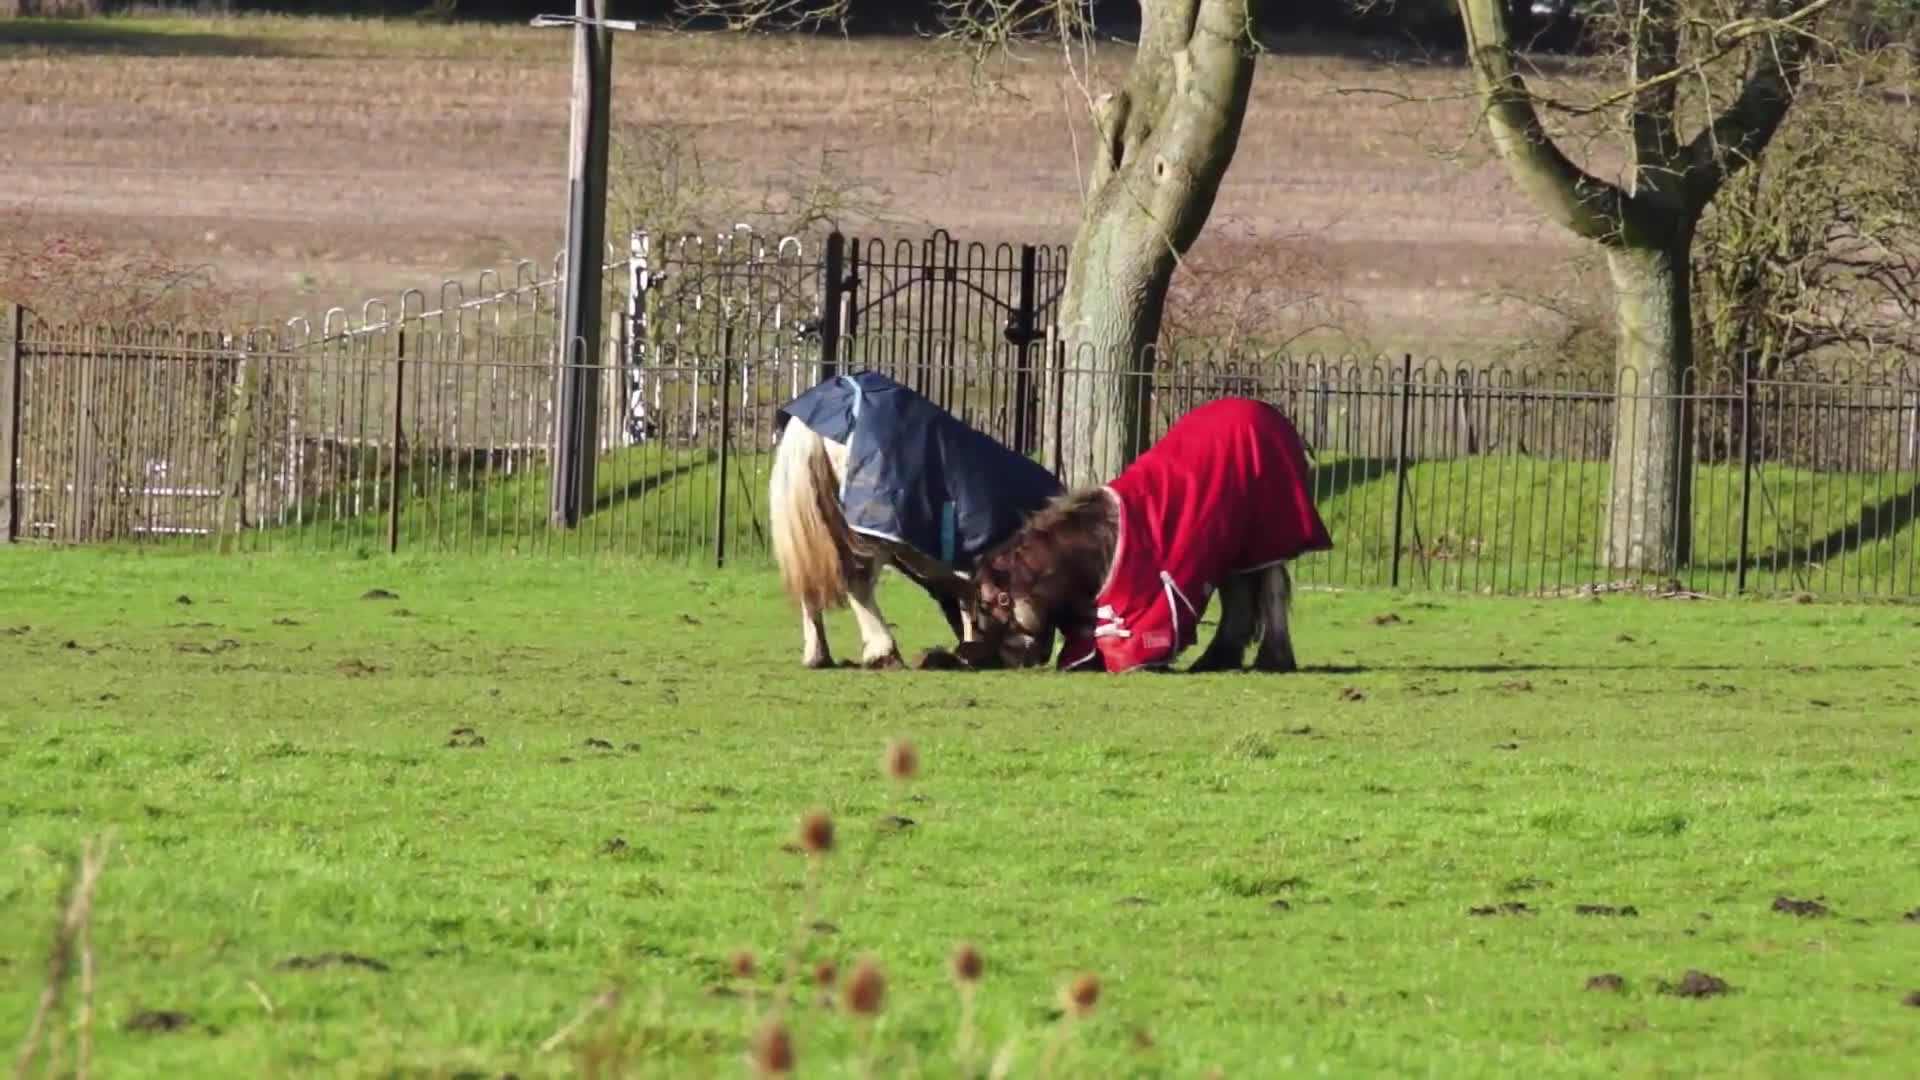 Two horses playing on grass field